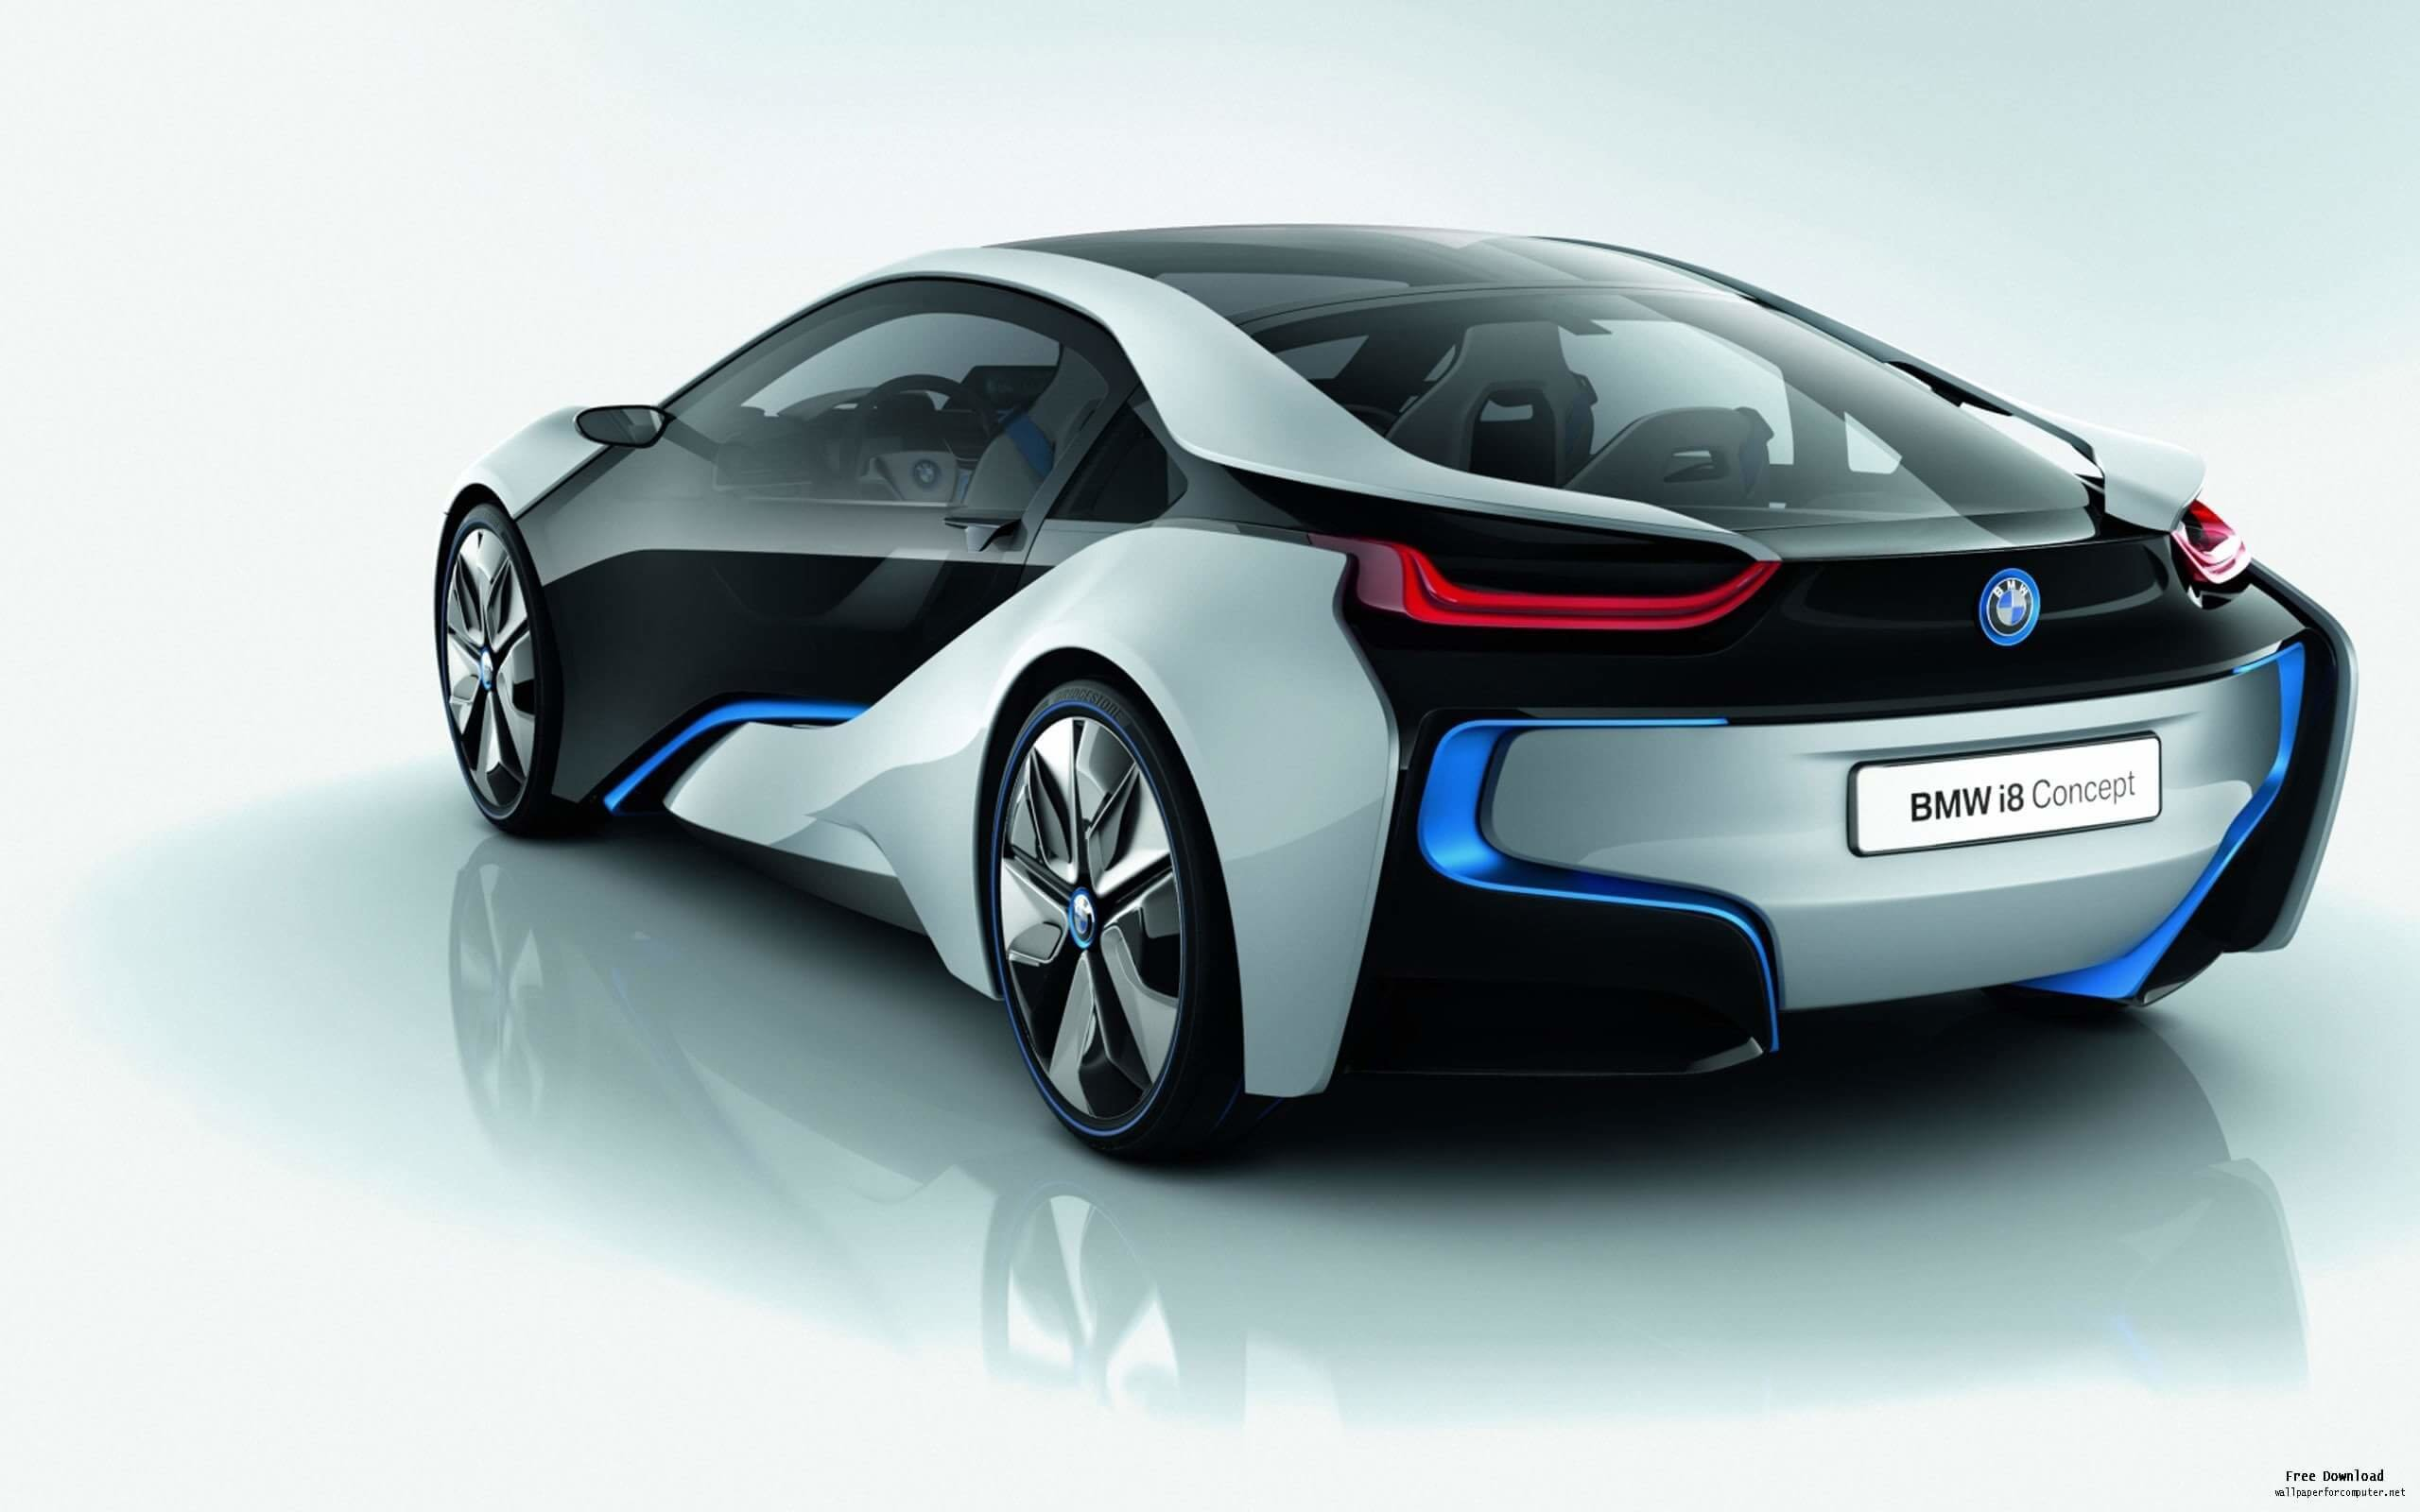 Latest Bmw I8 Super Car Full Review Price Specifications Free Download